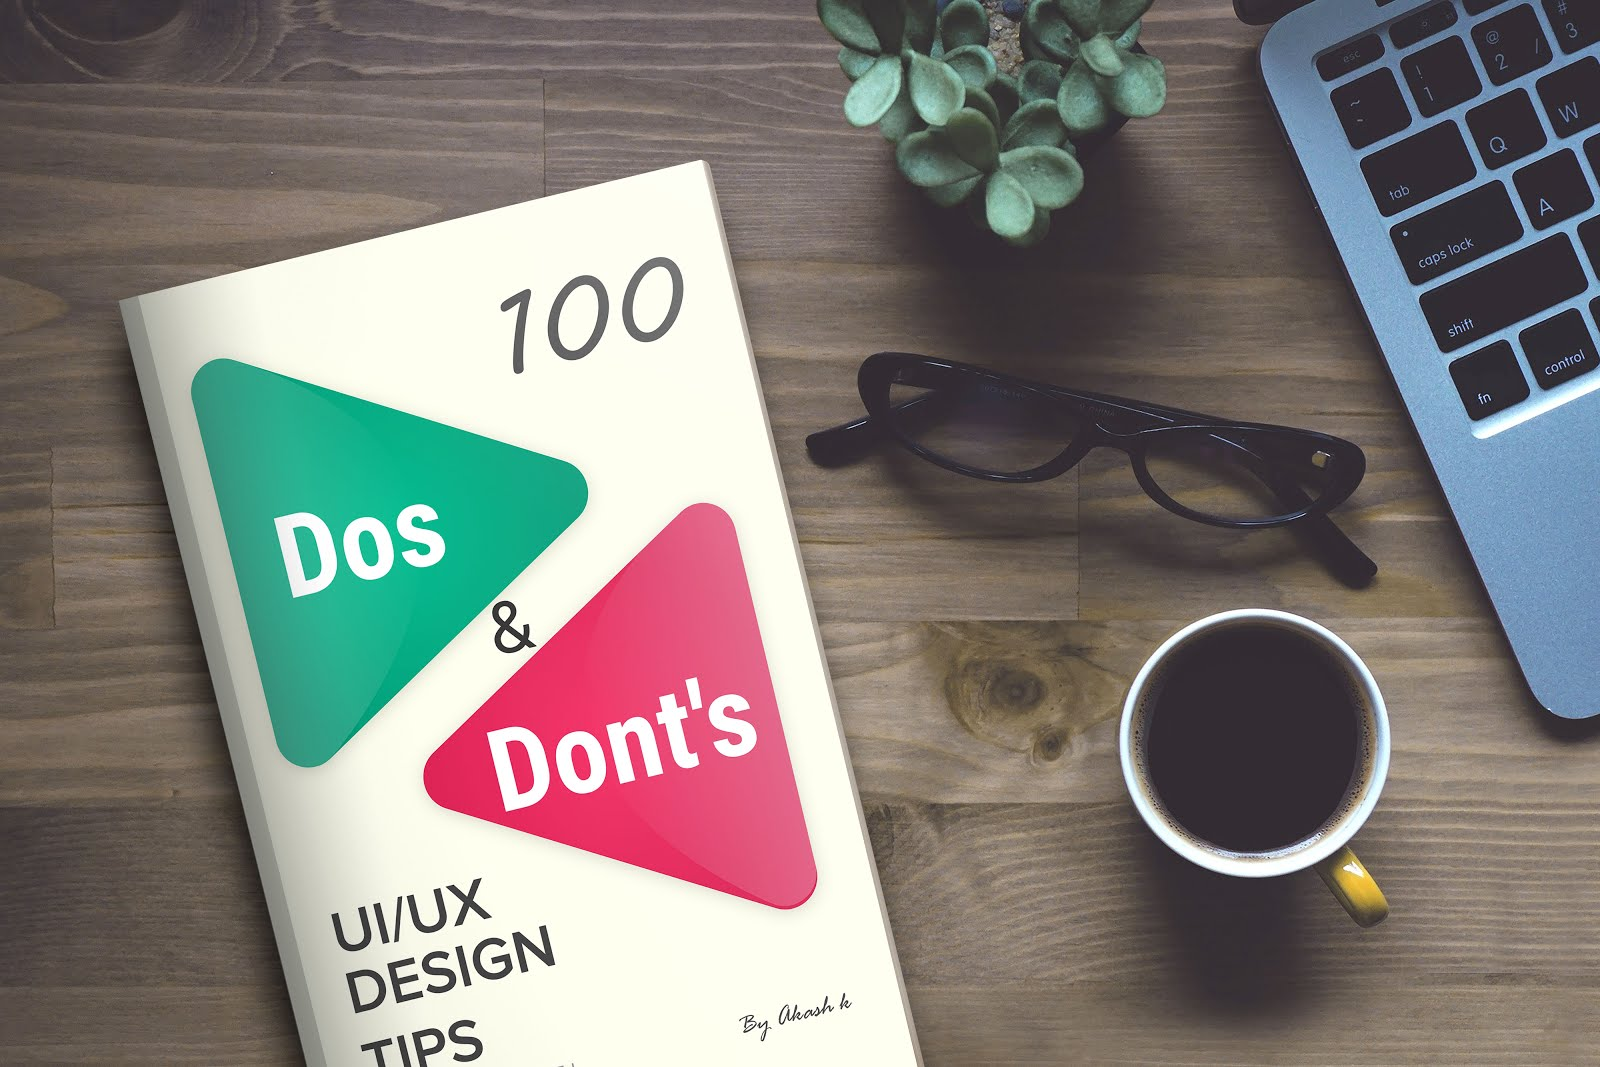 100 Dos and Dont's UI/UX Design Tips eBook